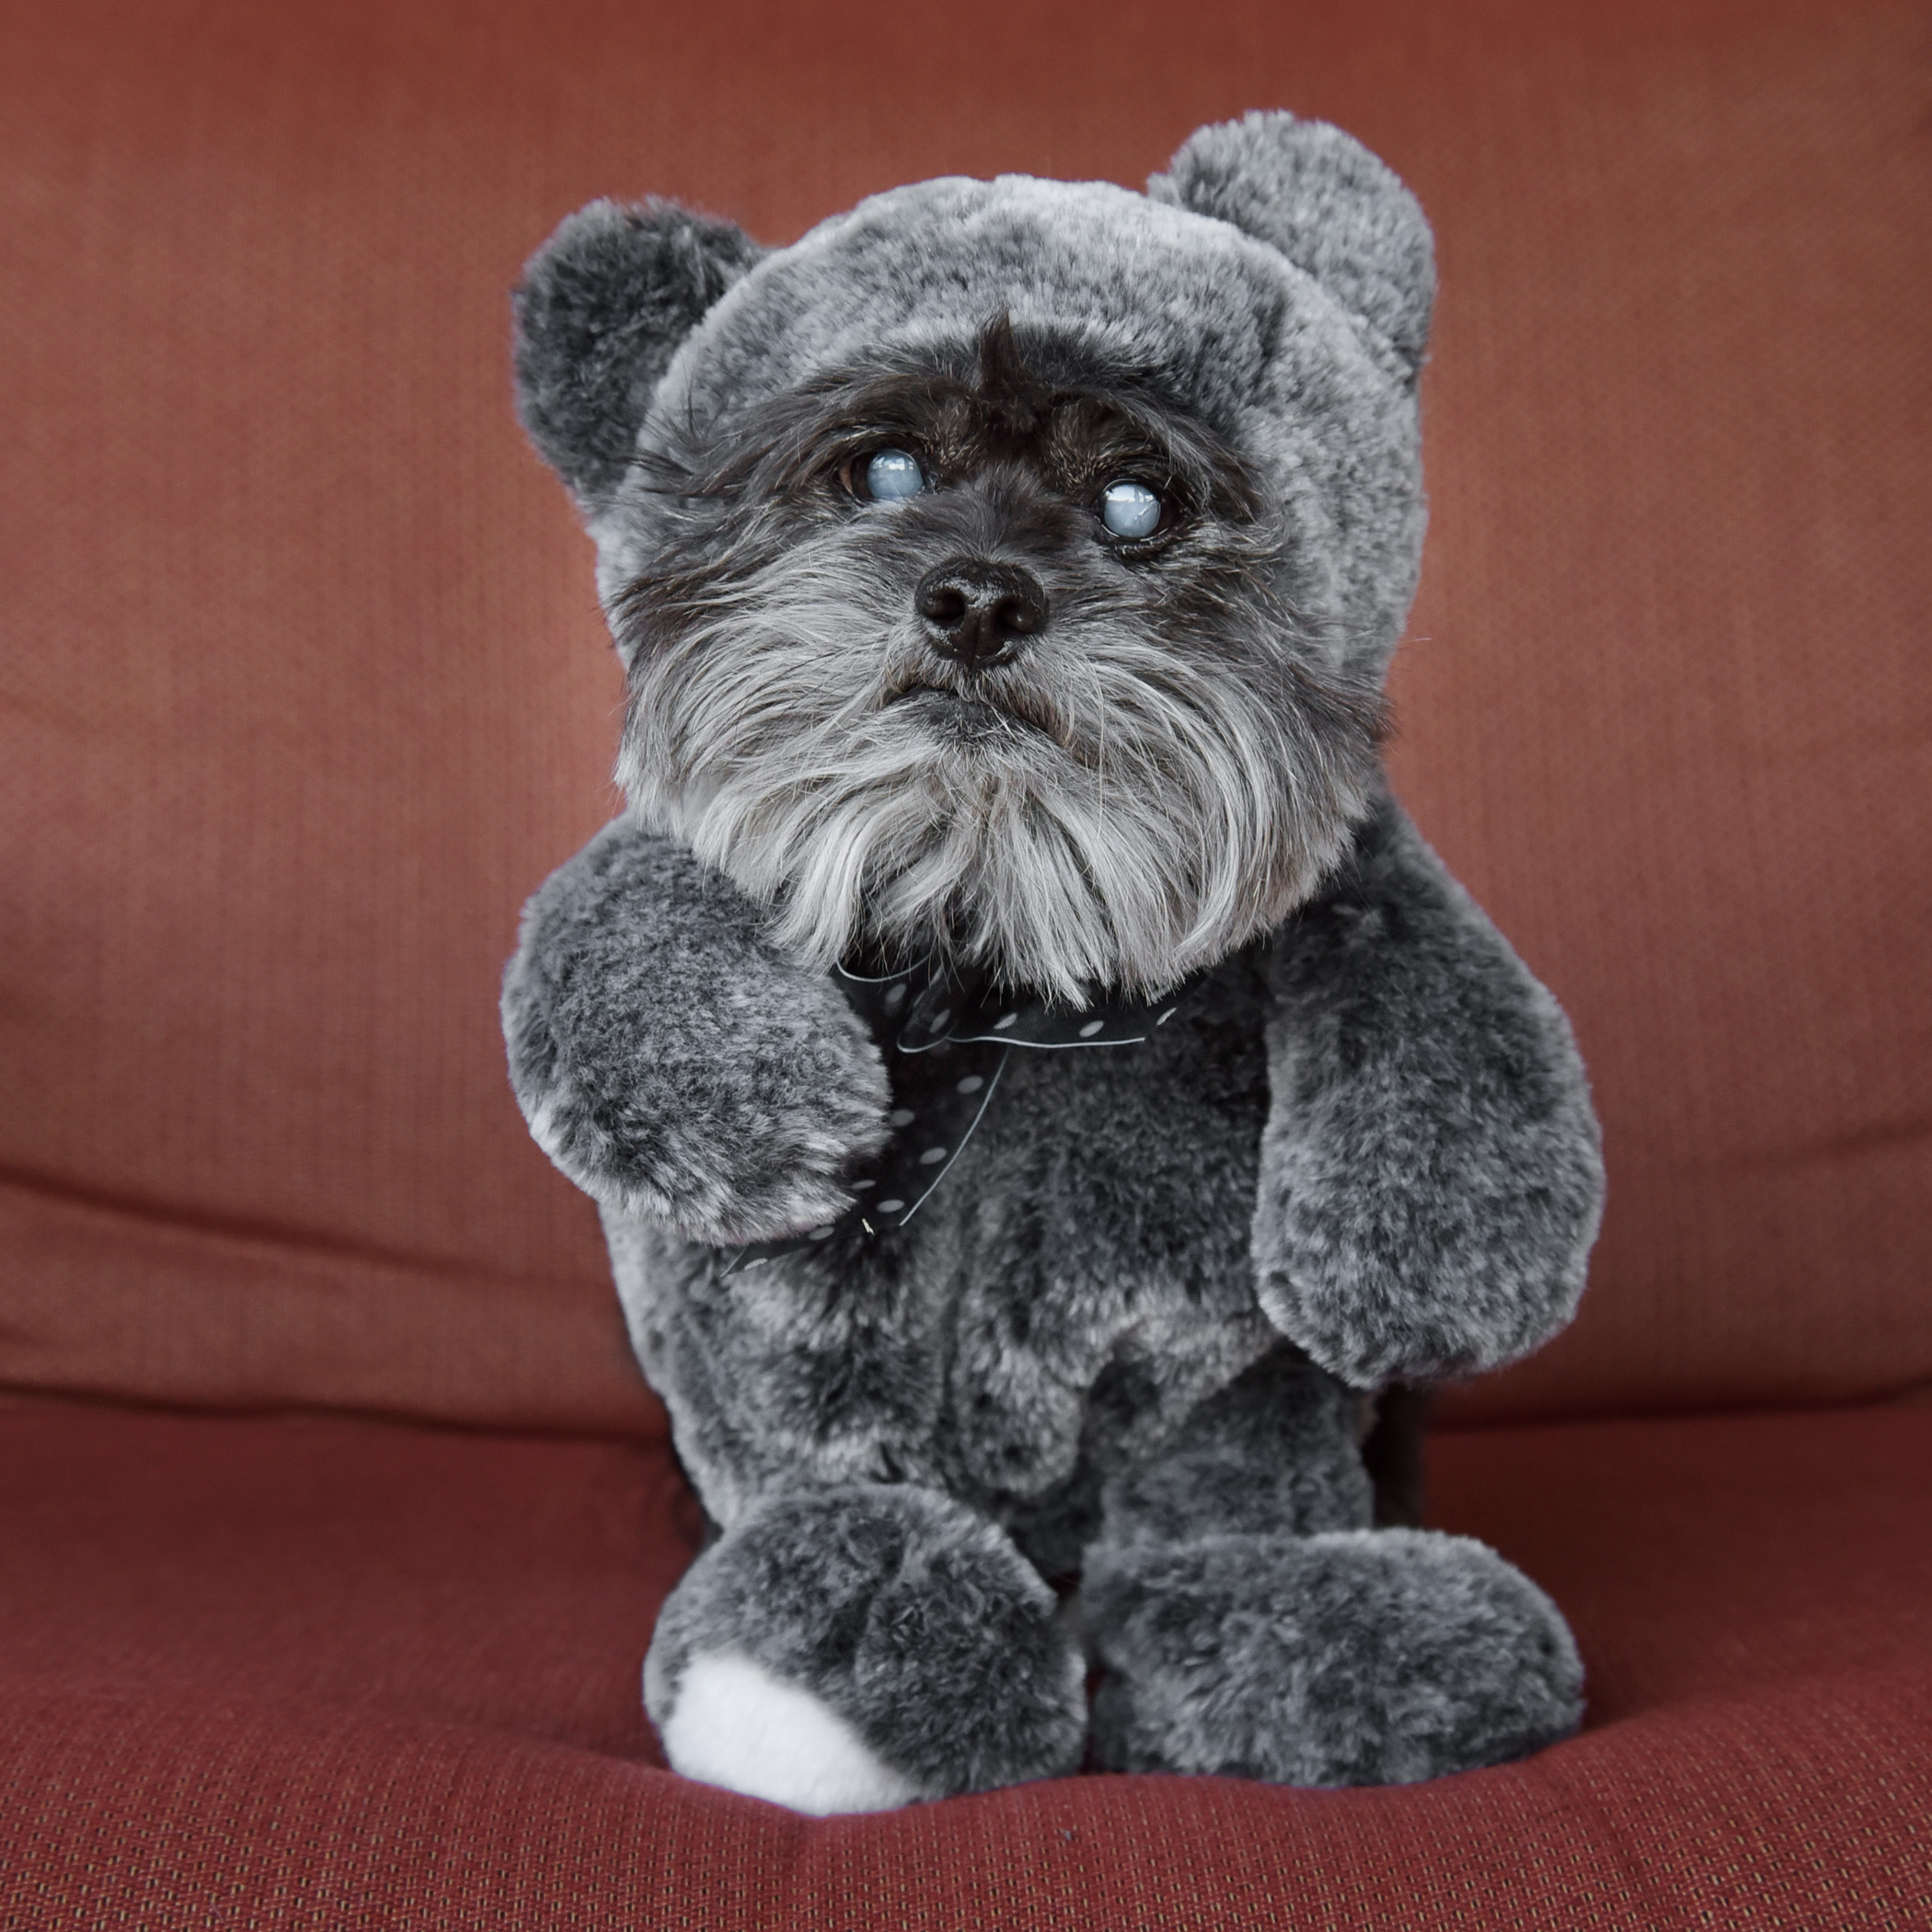 Teddy Benji! I think he was an Ewok in another life!